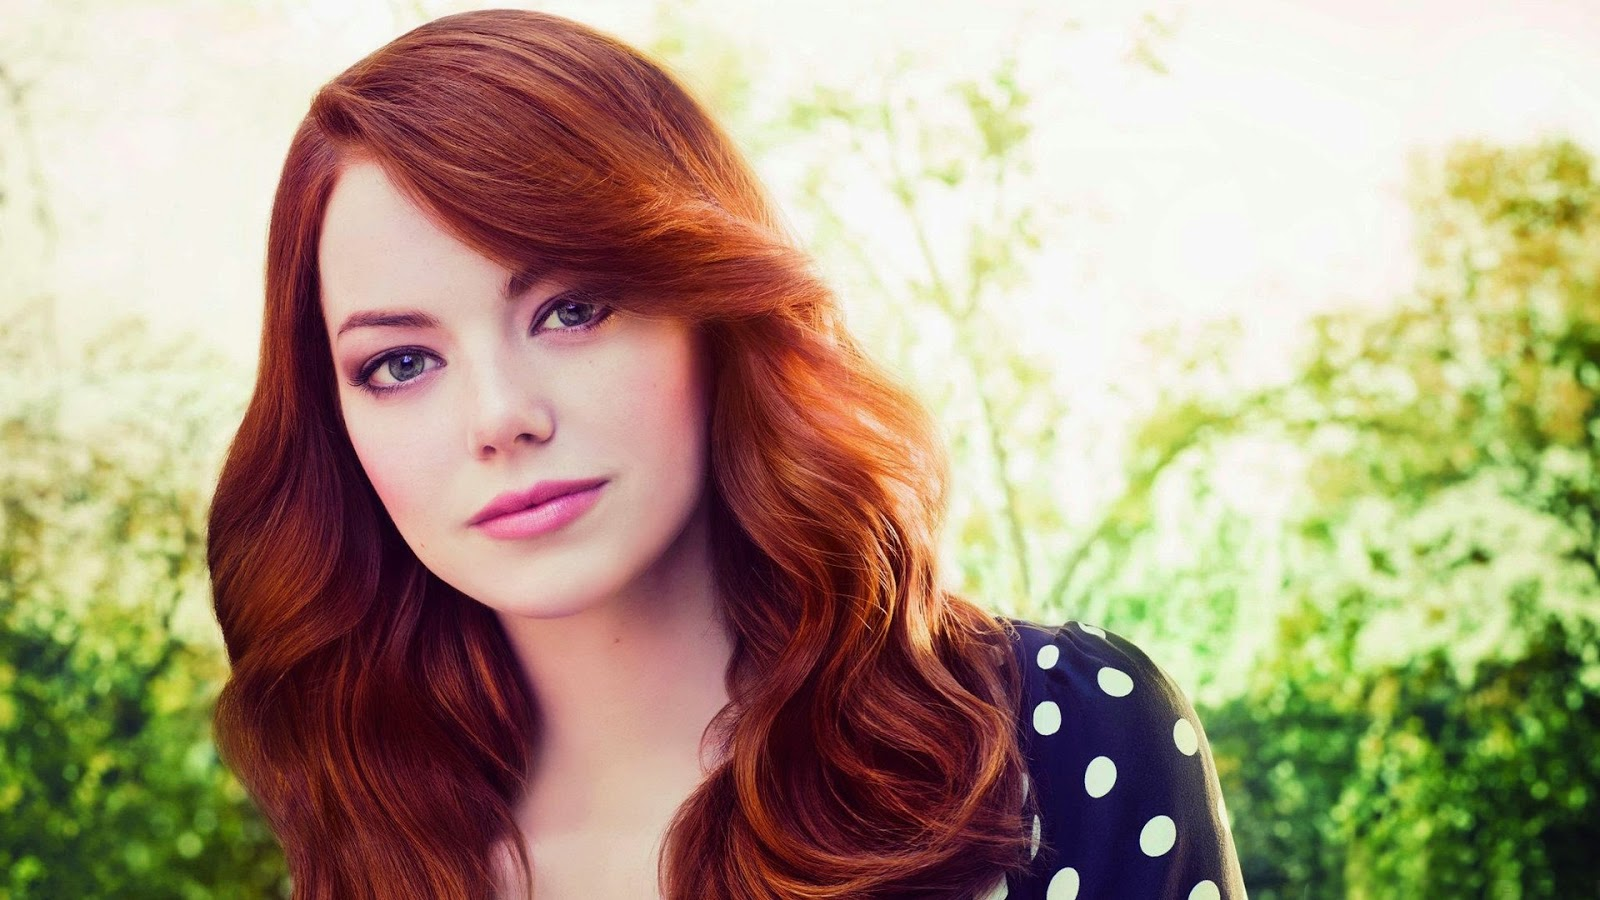 spider man actress emma stone wallpapers - Spider Man Actress Emma Stone For Desktop